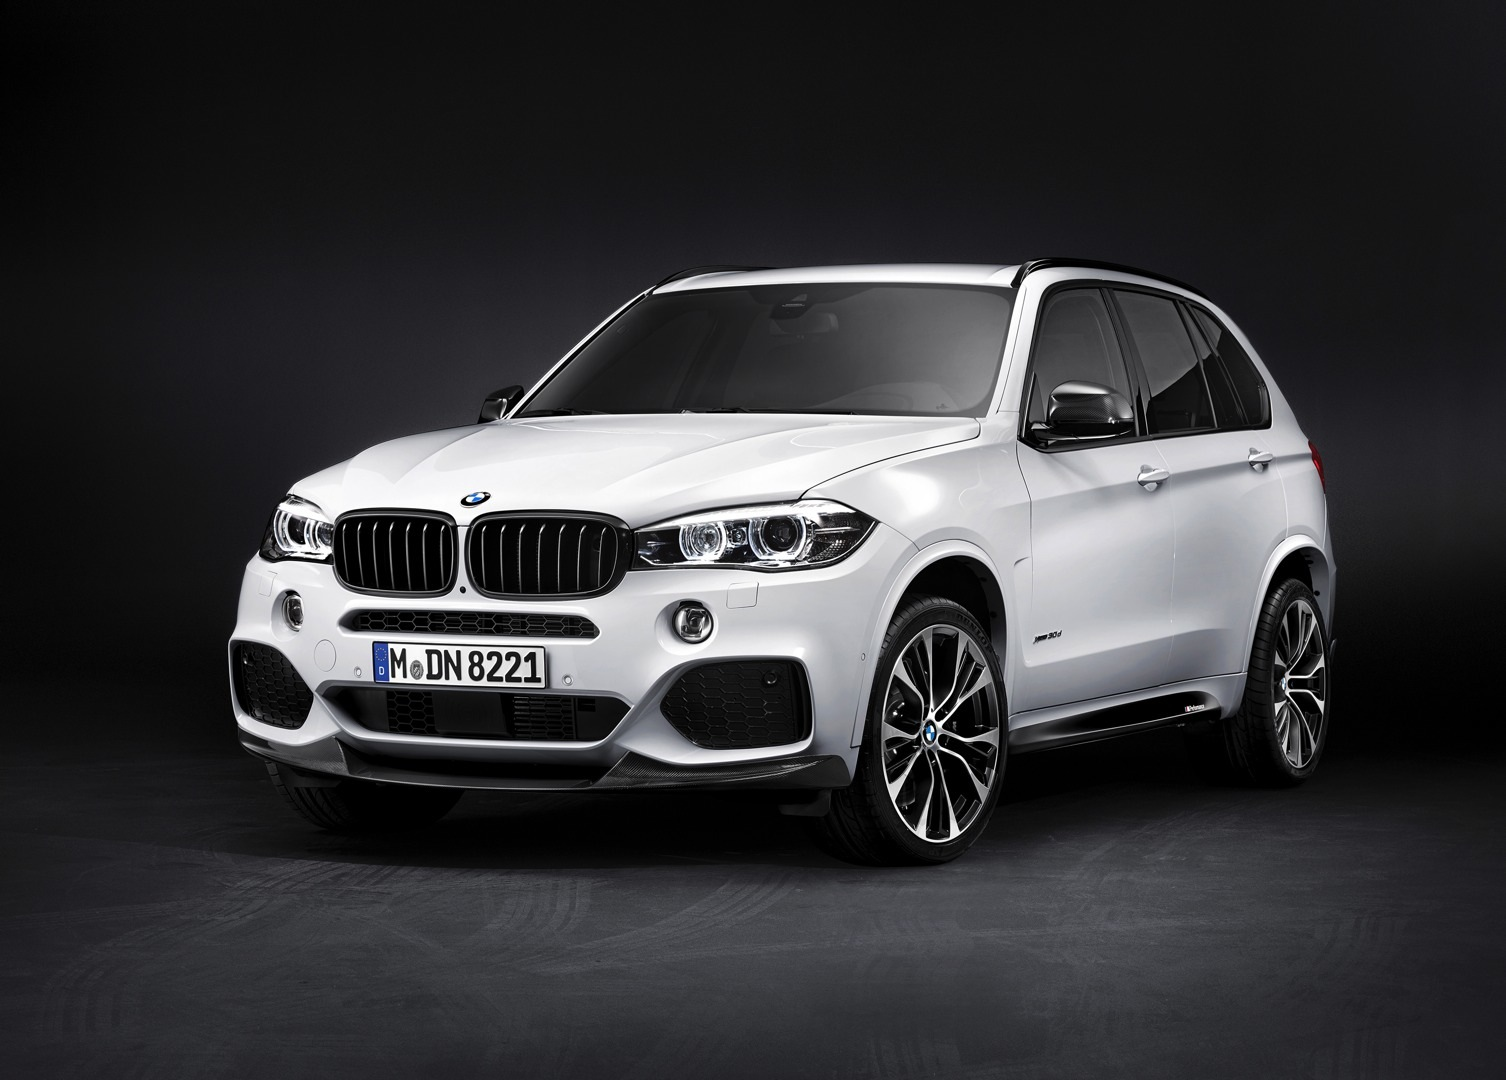 2014 Bmw X5 Receives M Performance Parts Autoevolution